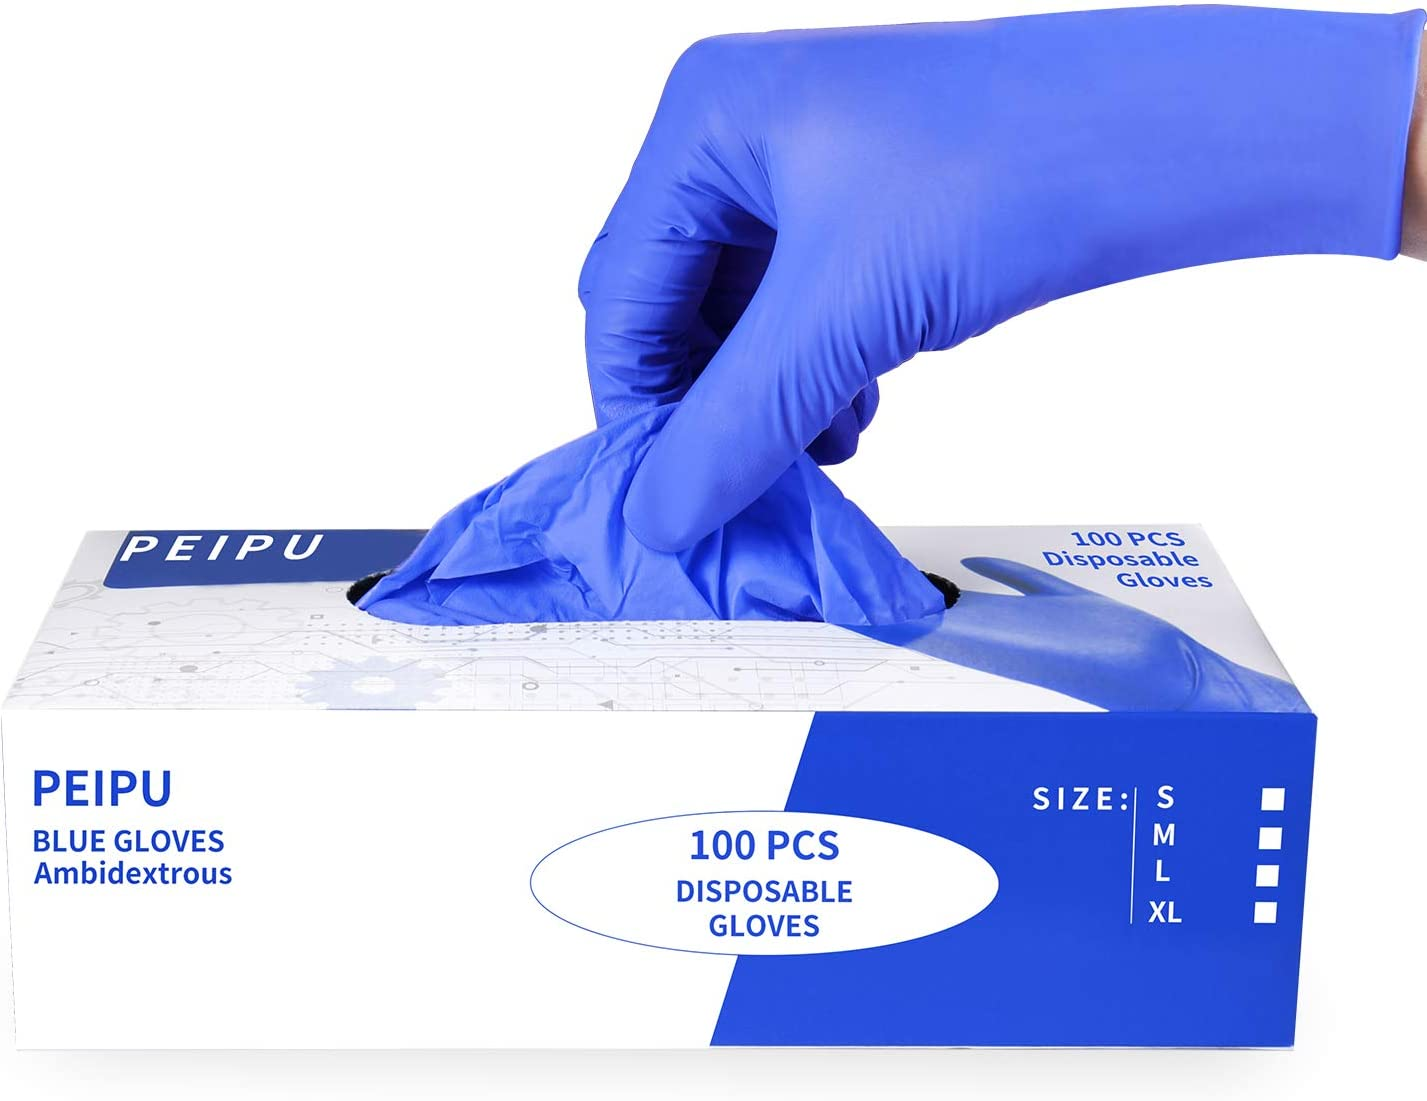 PEIPU Nitrile and Vinyl Blend Material Disposable Gloves, Powder Free, Cleaning Service Gloves, Latex Free, 100 PCS, Medium Size